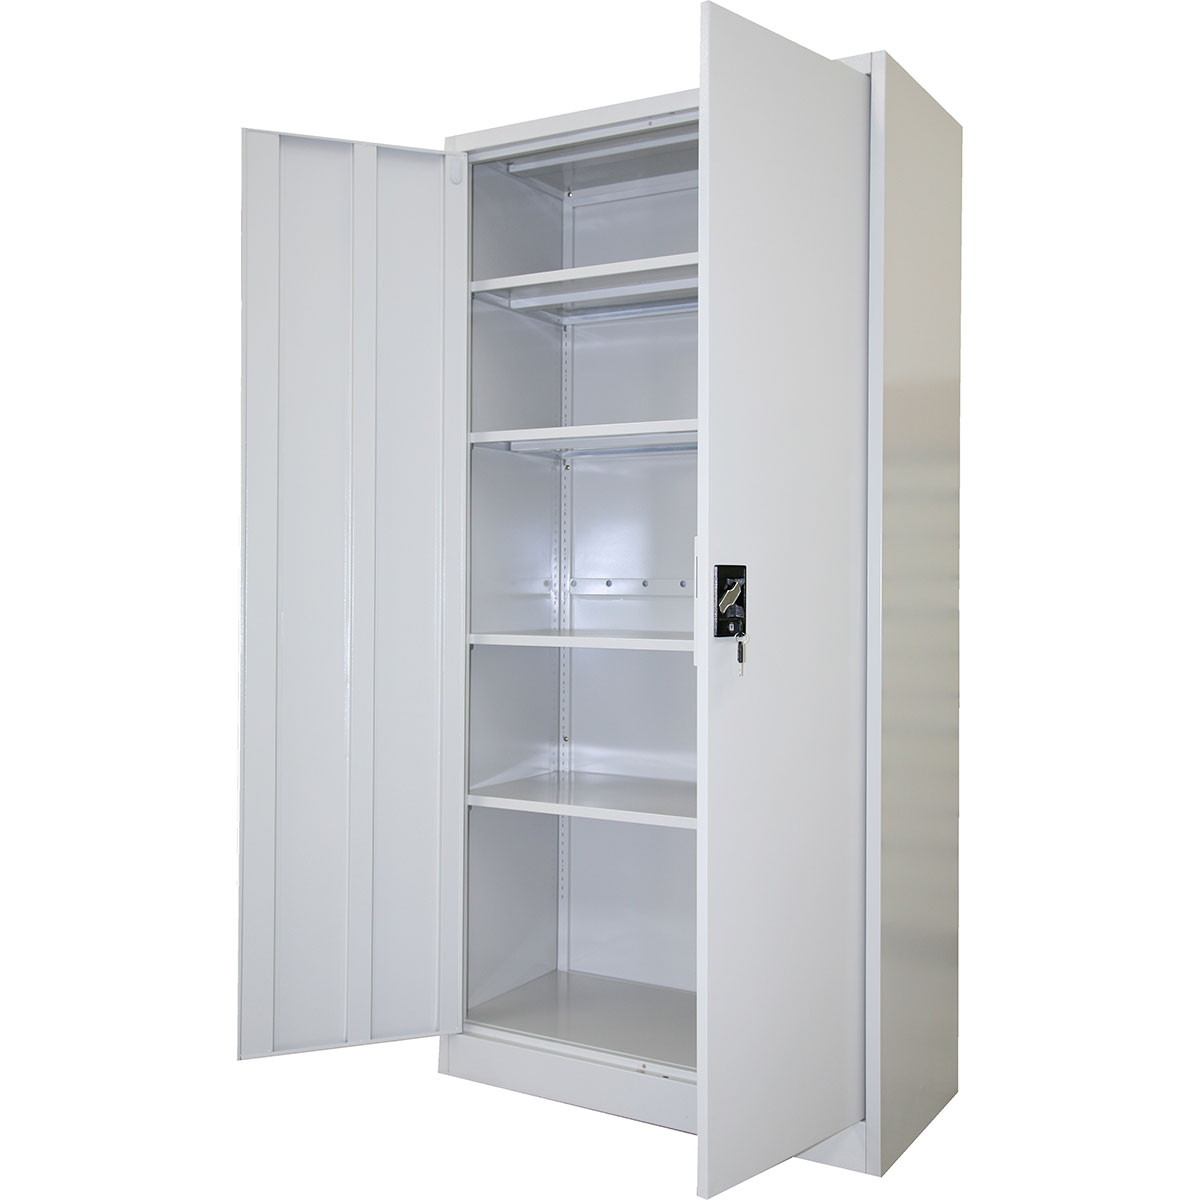 2 DOOR STORAGE CUPBOARDS  sc 1 st  One Stop Shelving & One Stop Shelving | Storage Boxes | Melbourne Victoria